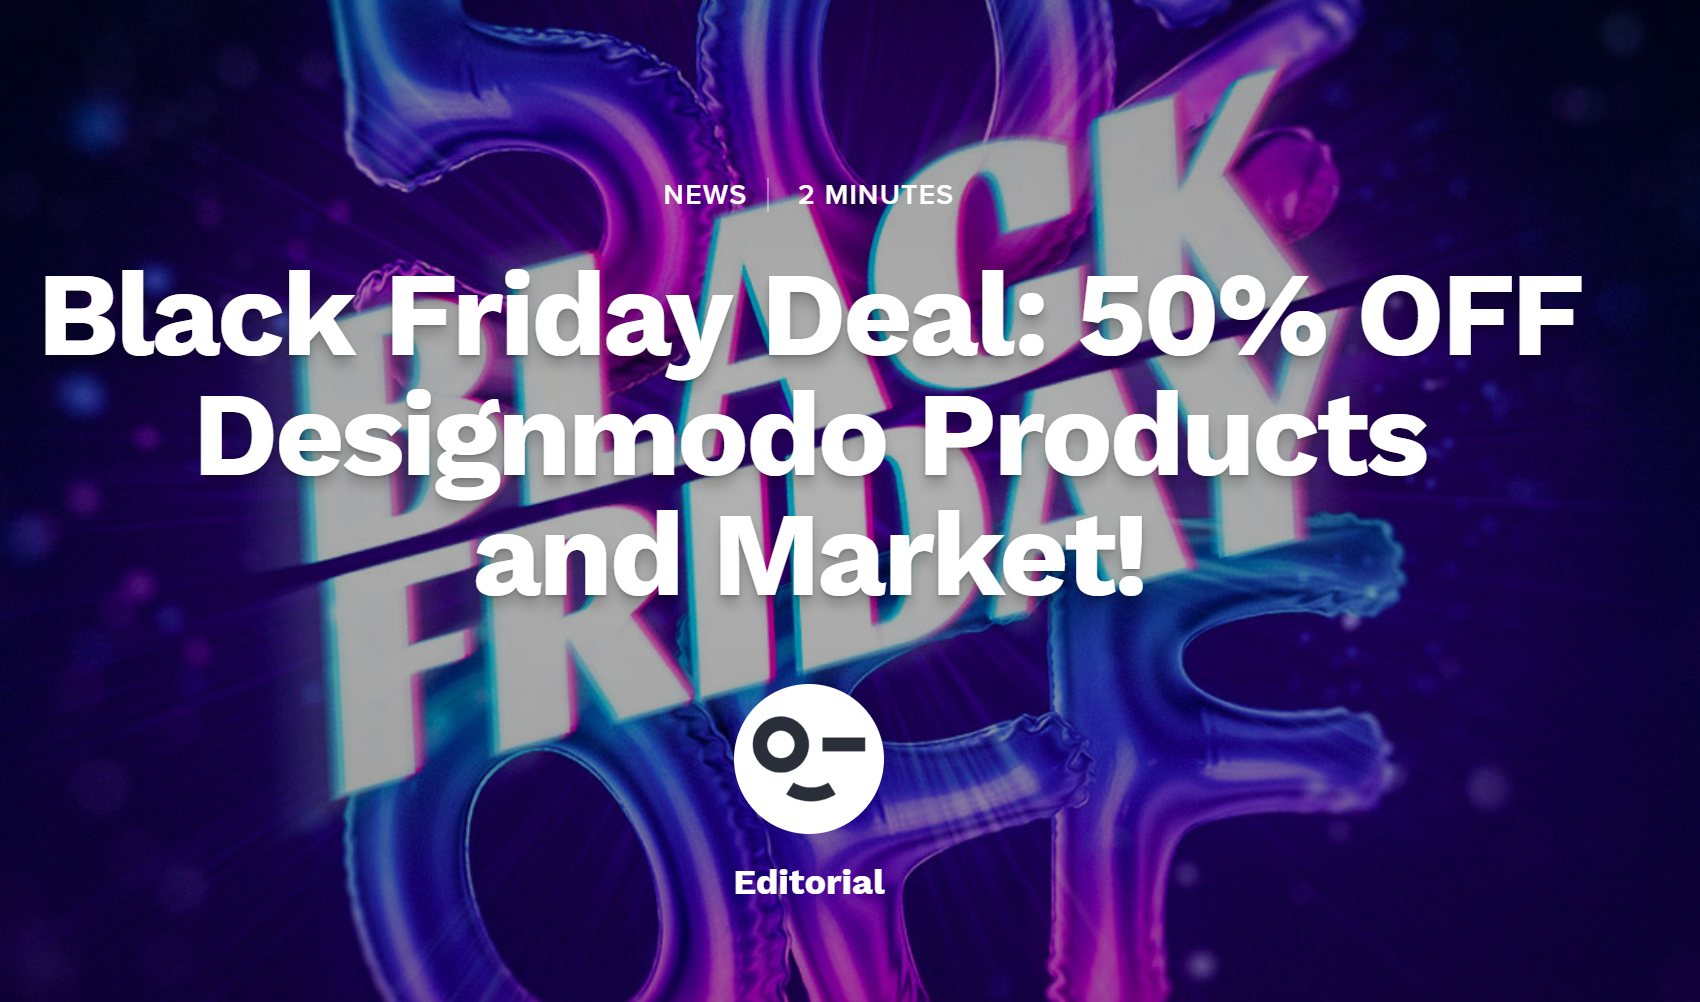 Designmodo Black Friday Deals